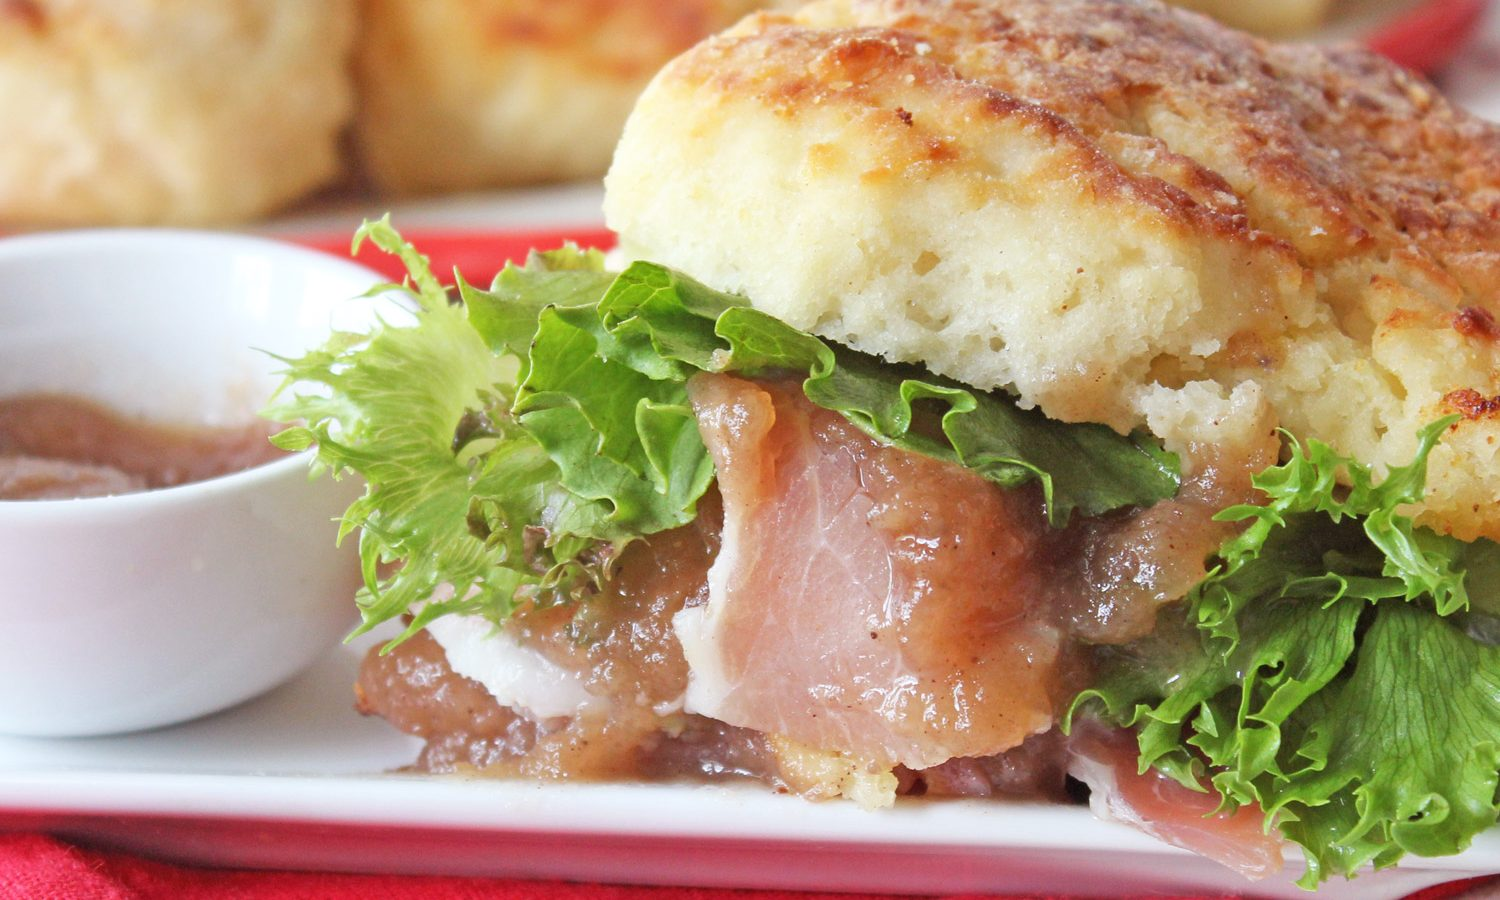 Apple Butter Ham Biscuits with fresh greens